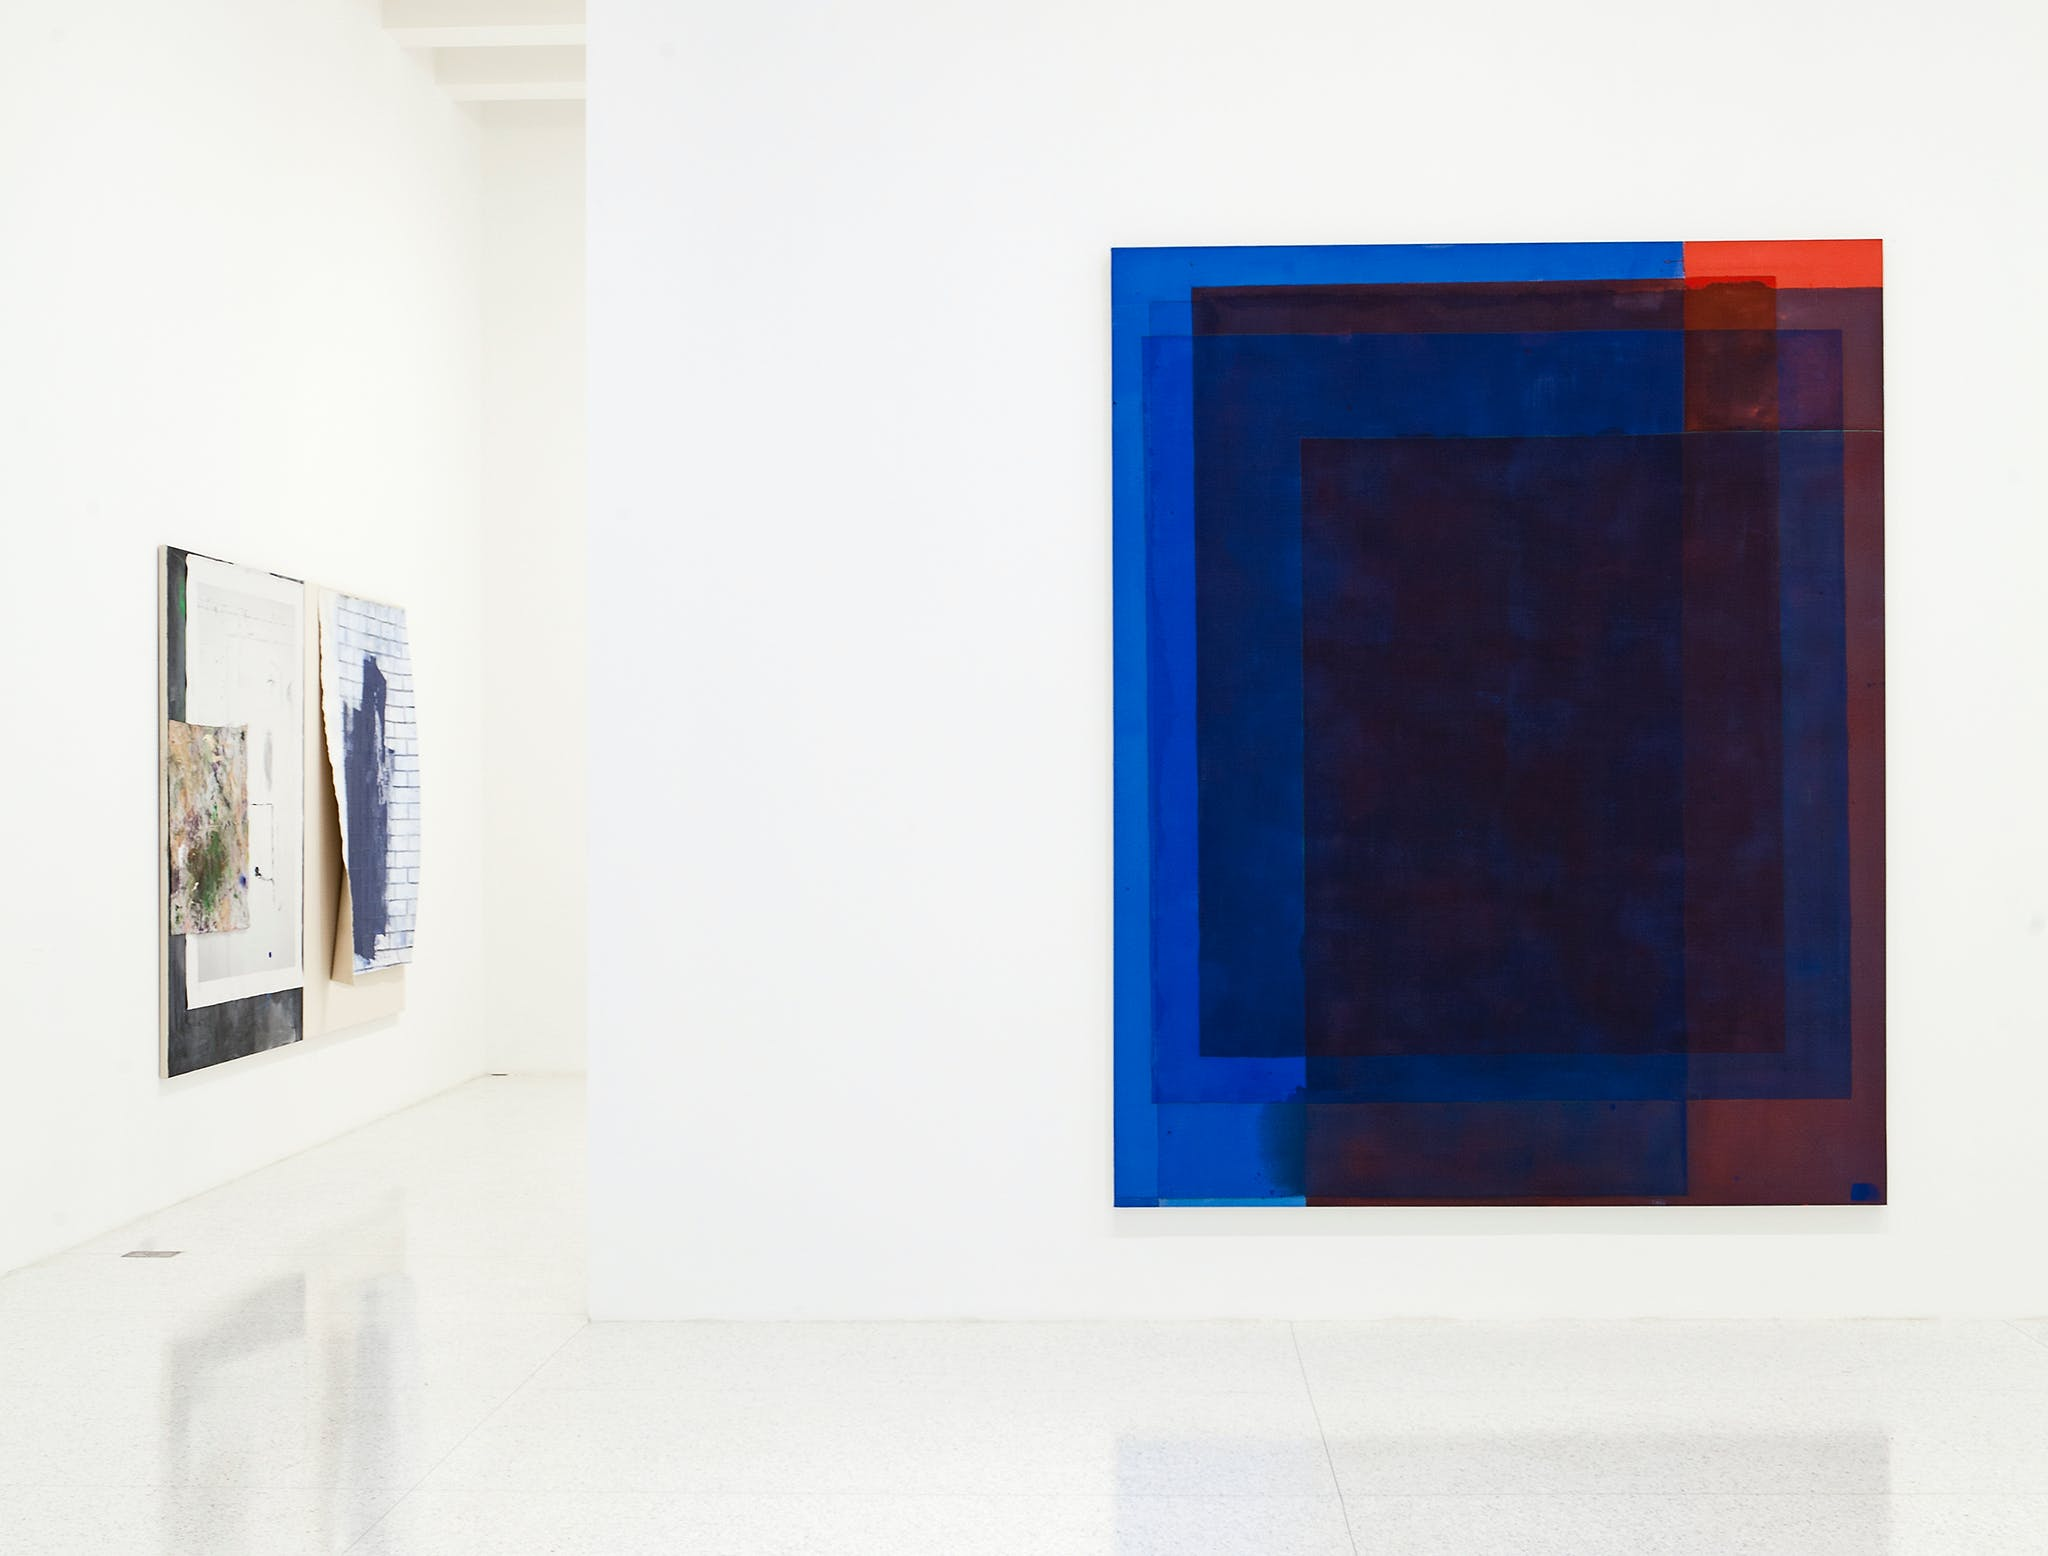 Installation view of the exhibition, Painter Painter, 2013